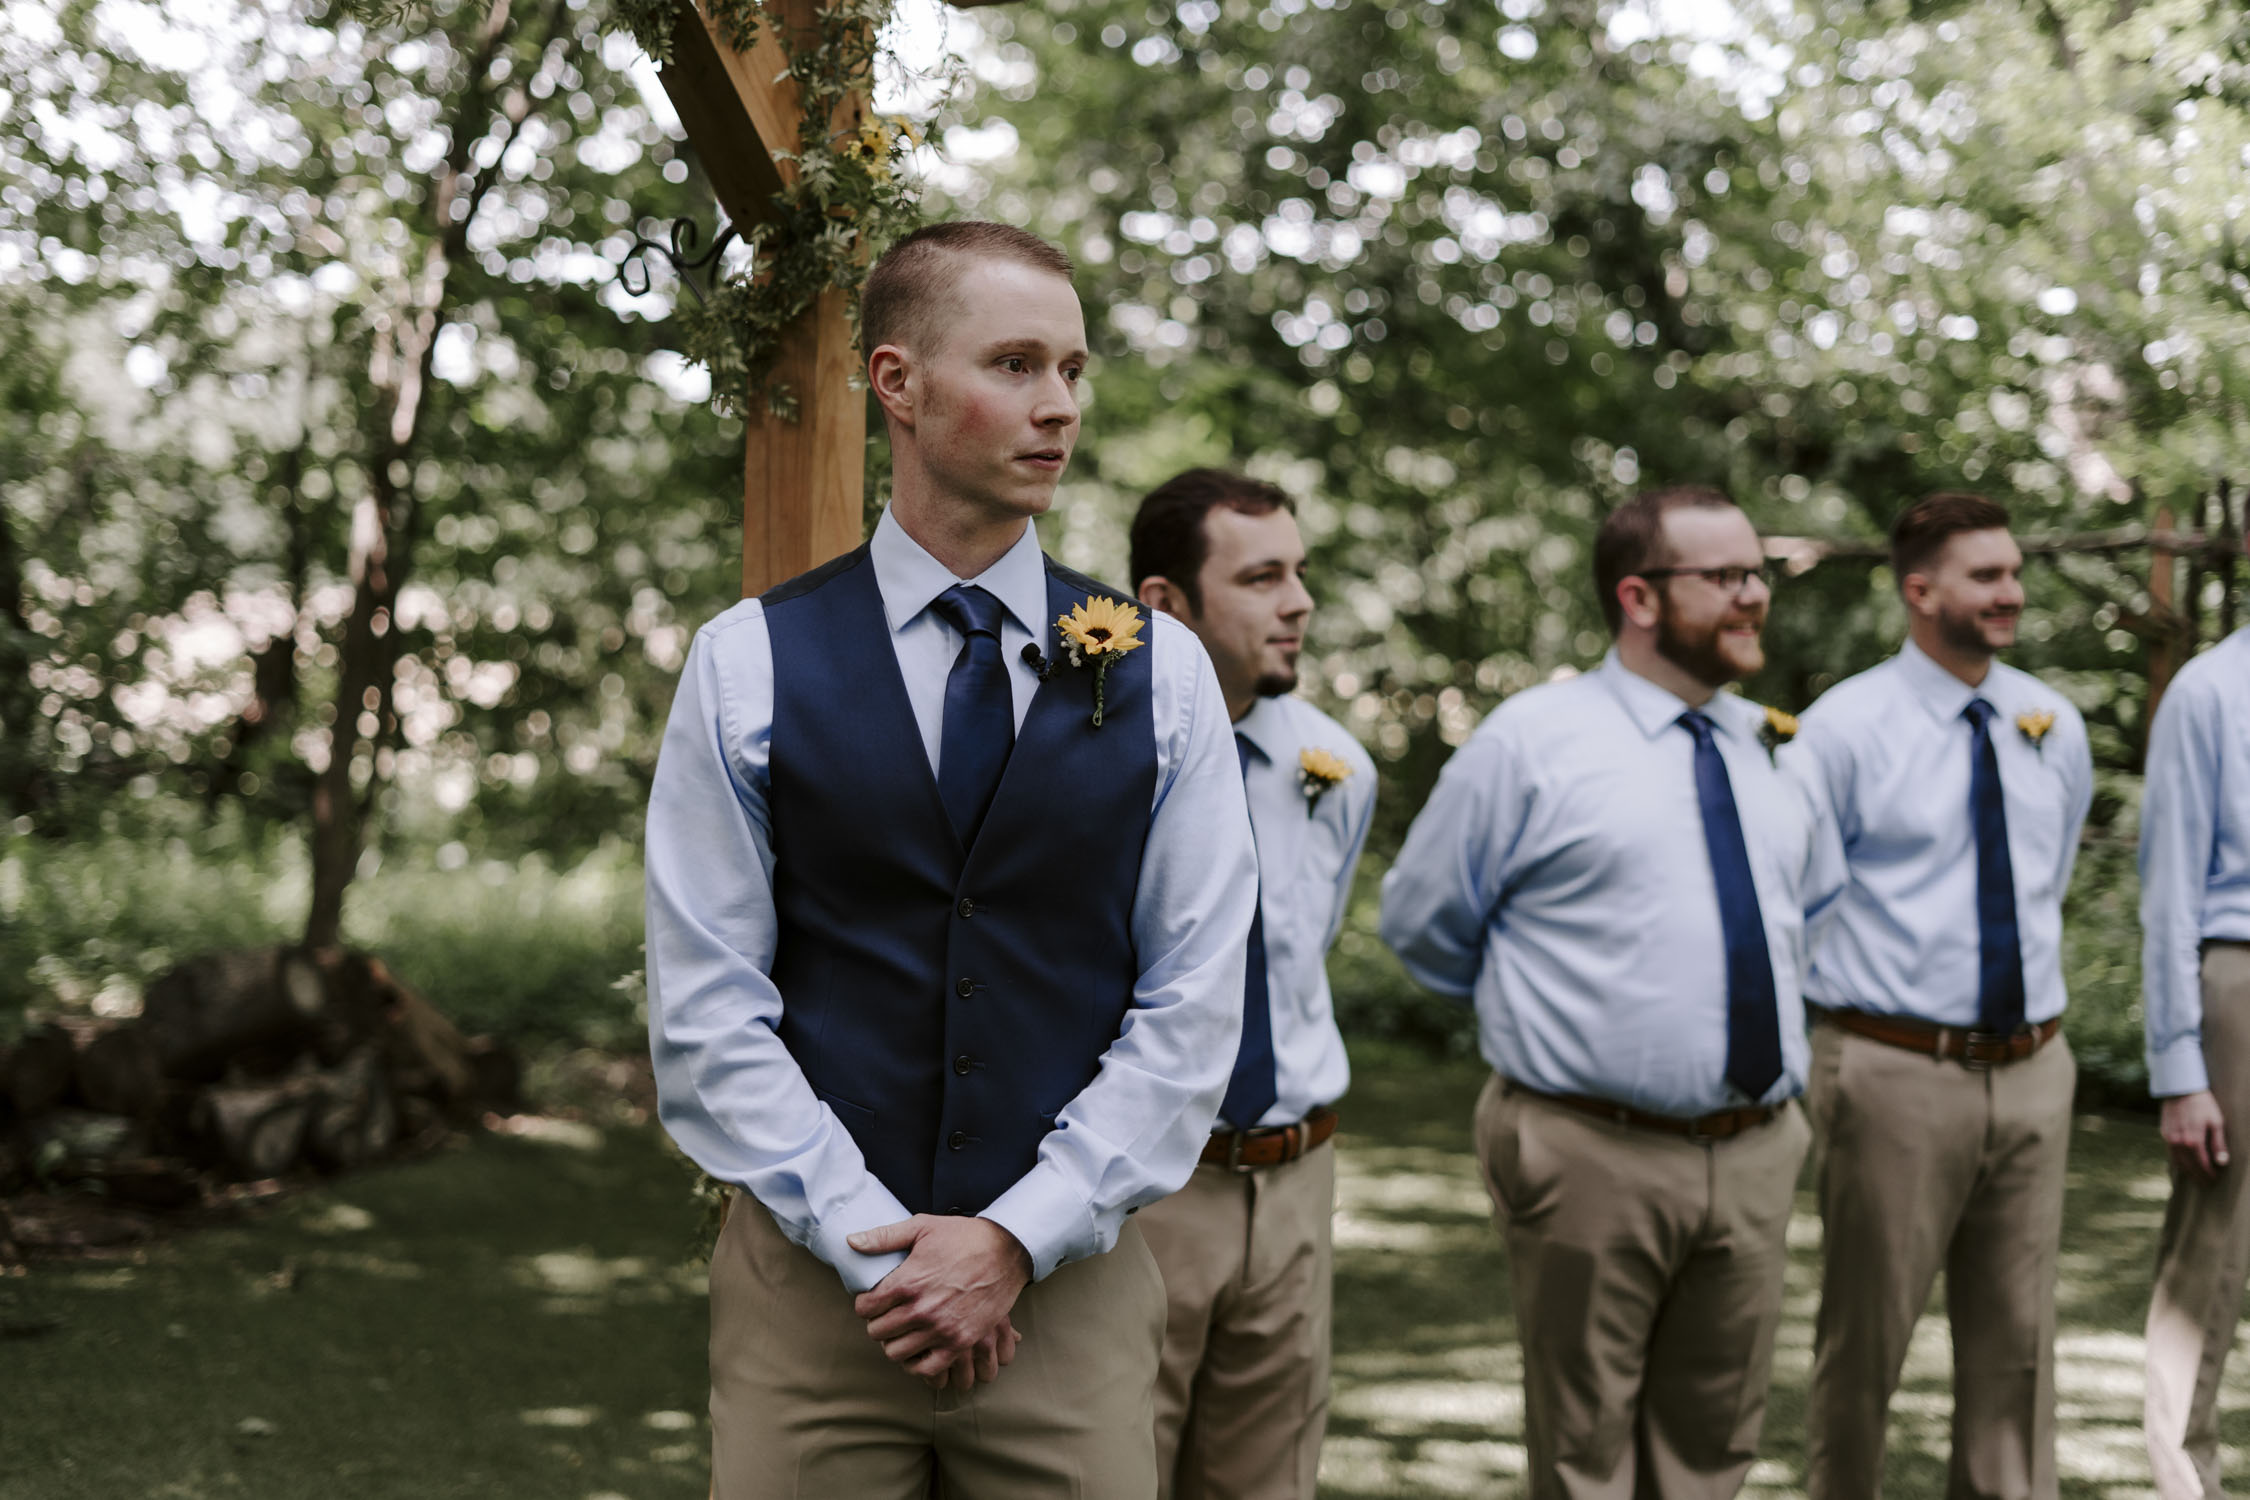 Jess&KyleCochran Wedding 205.jpgSchwinn Produce Farm Wedding in Leavenworth - Lenexa - Lawrence, Kansas by Destination Wedding & Elopement Photographer | Kayli LaFon Photography